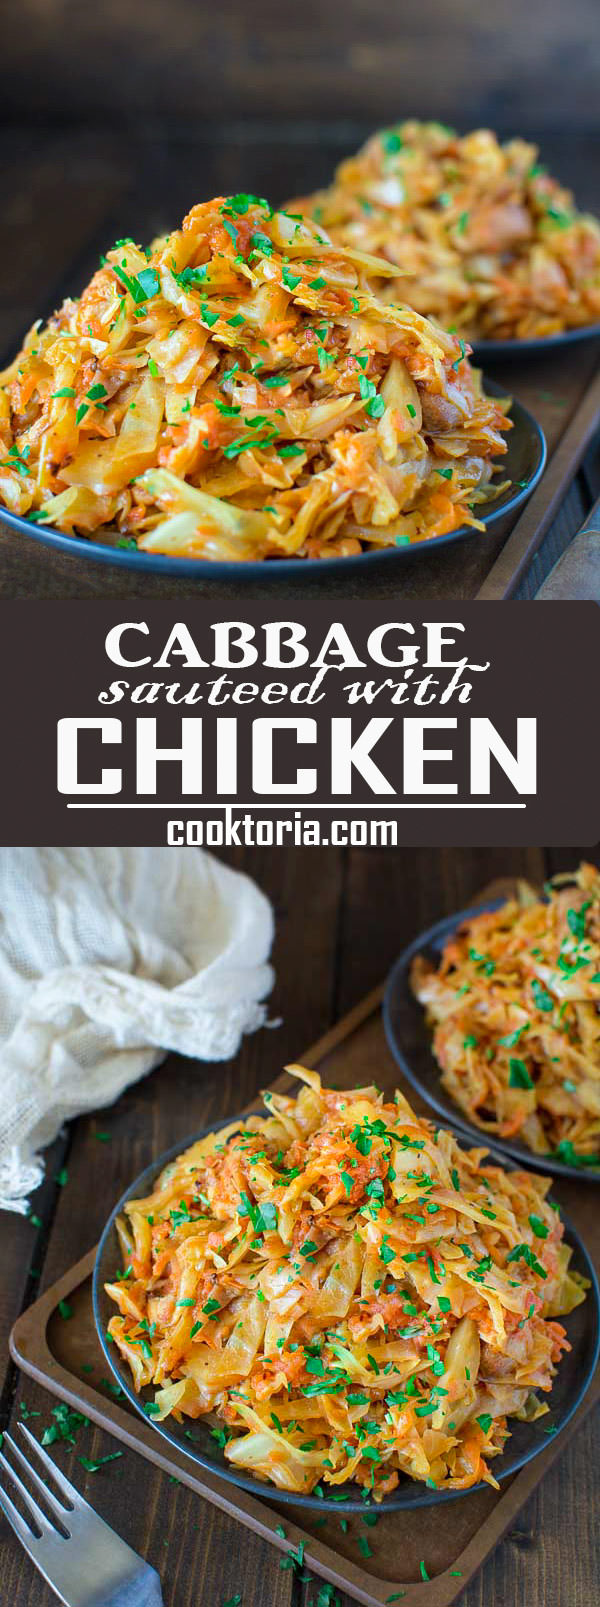 cabbage-sauteed-with-chicken-pin-1